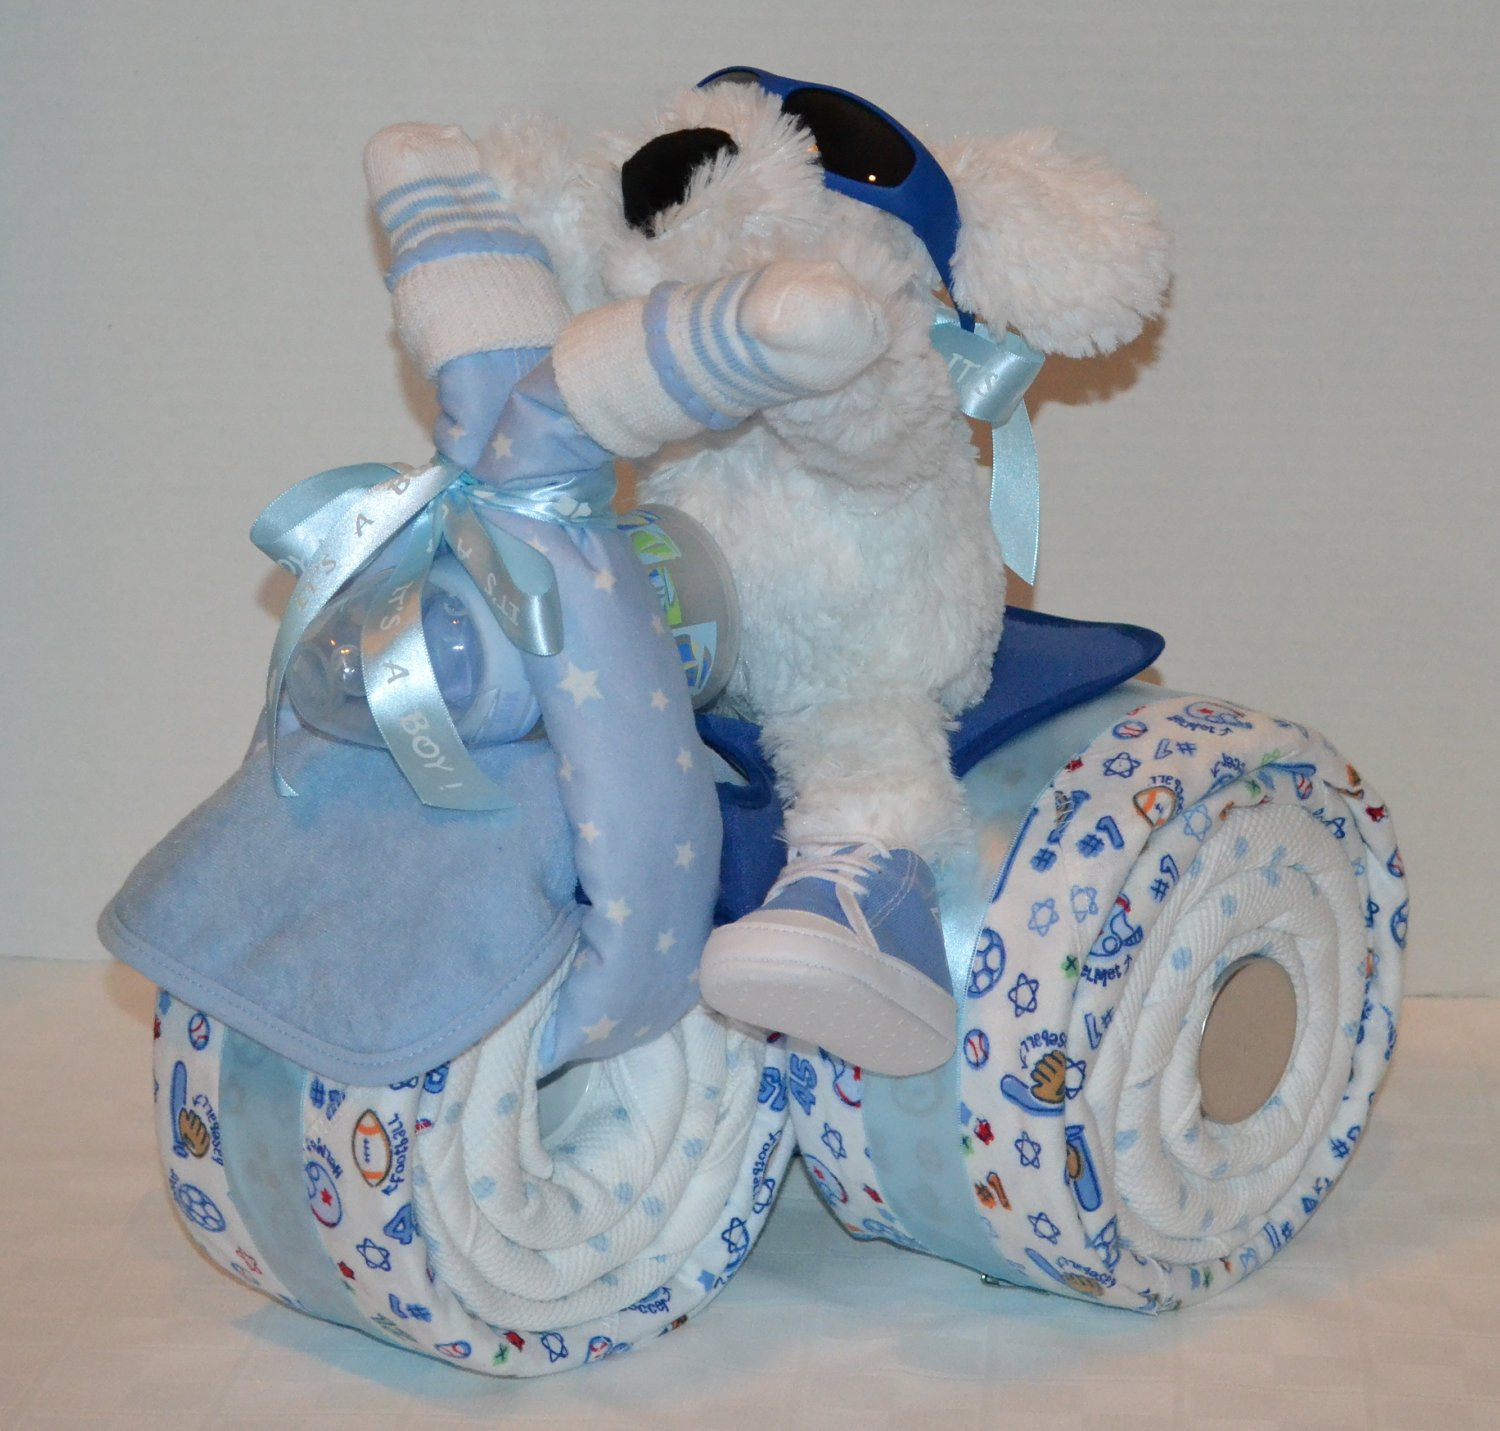 Baby Shower Gift Ideas For A Boy  Tricycle Trike Diaper Cake Baby Shower Gift Sports theme